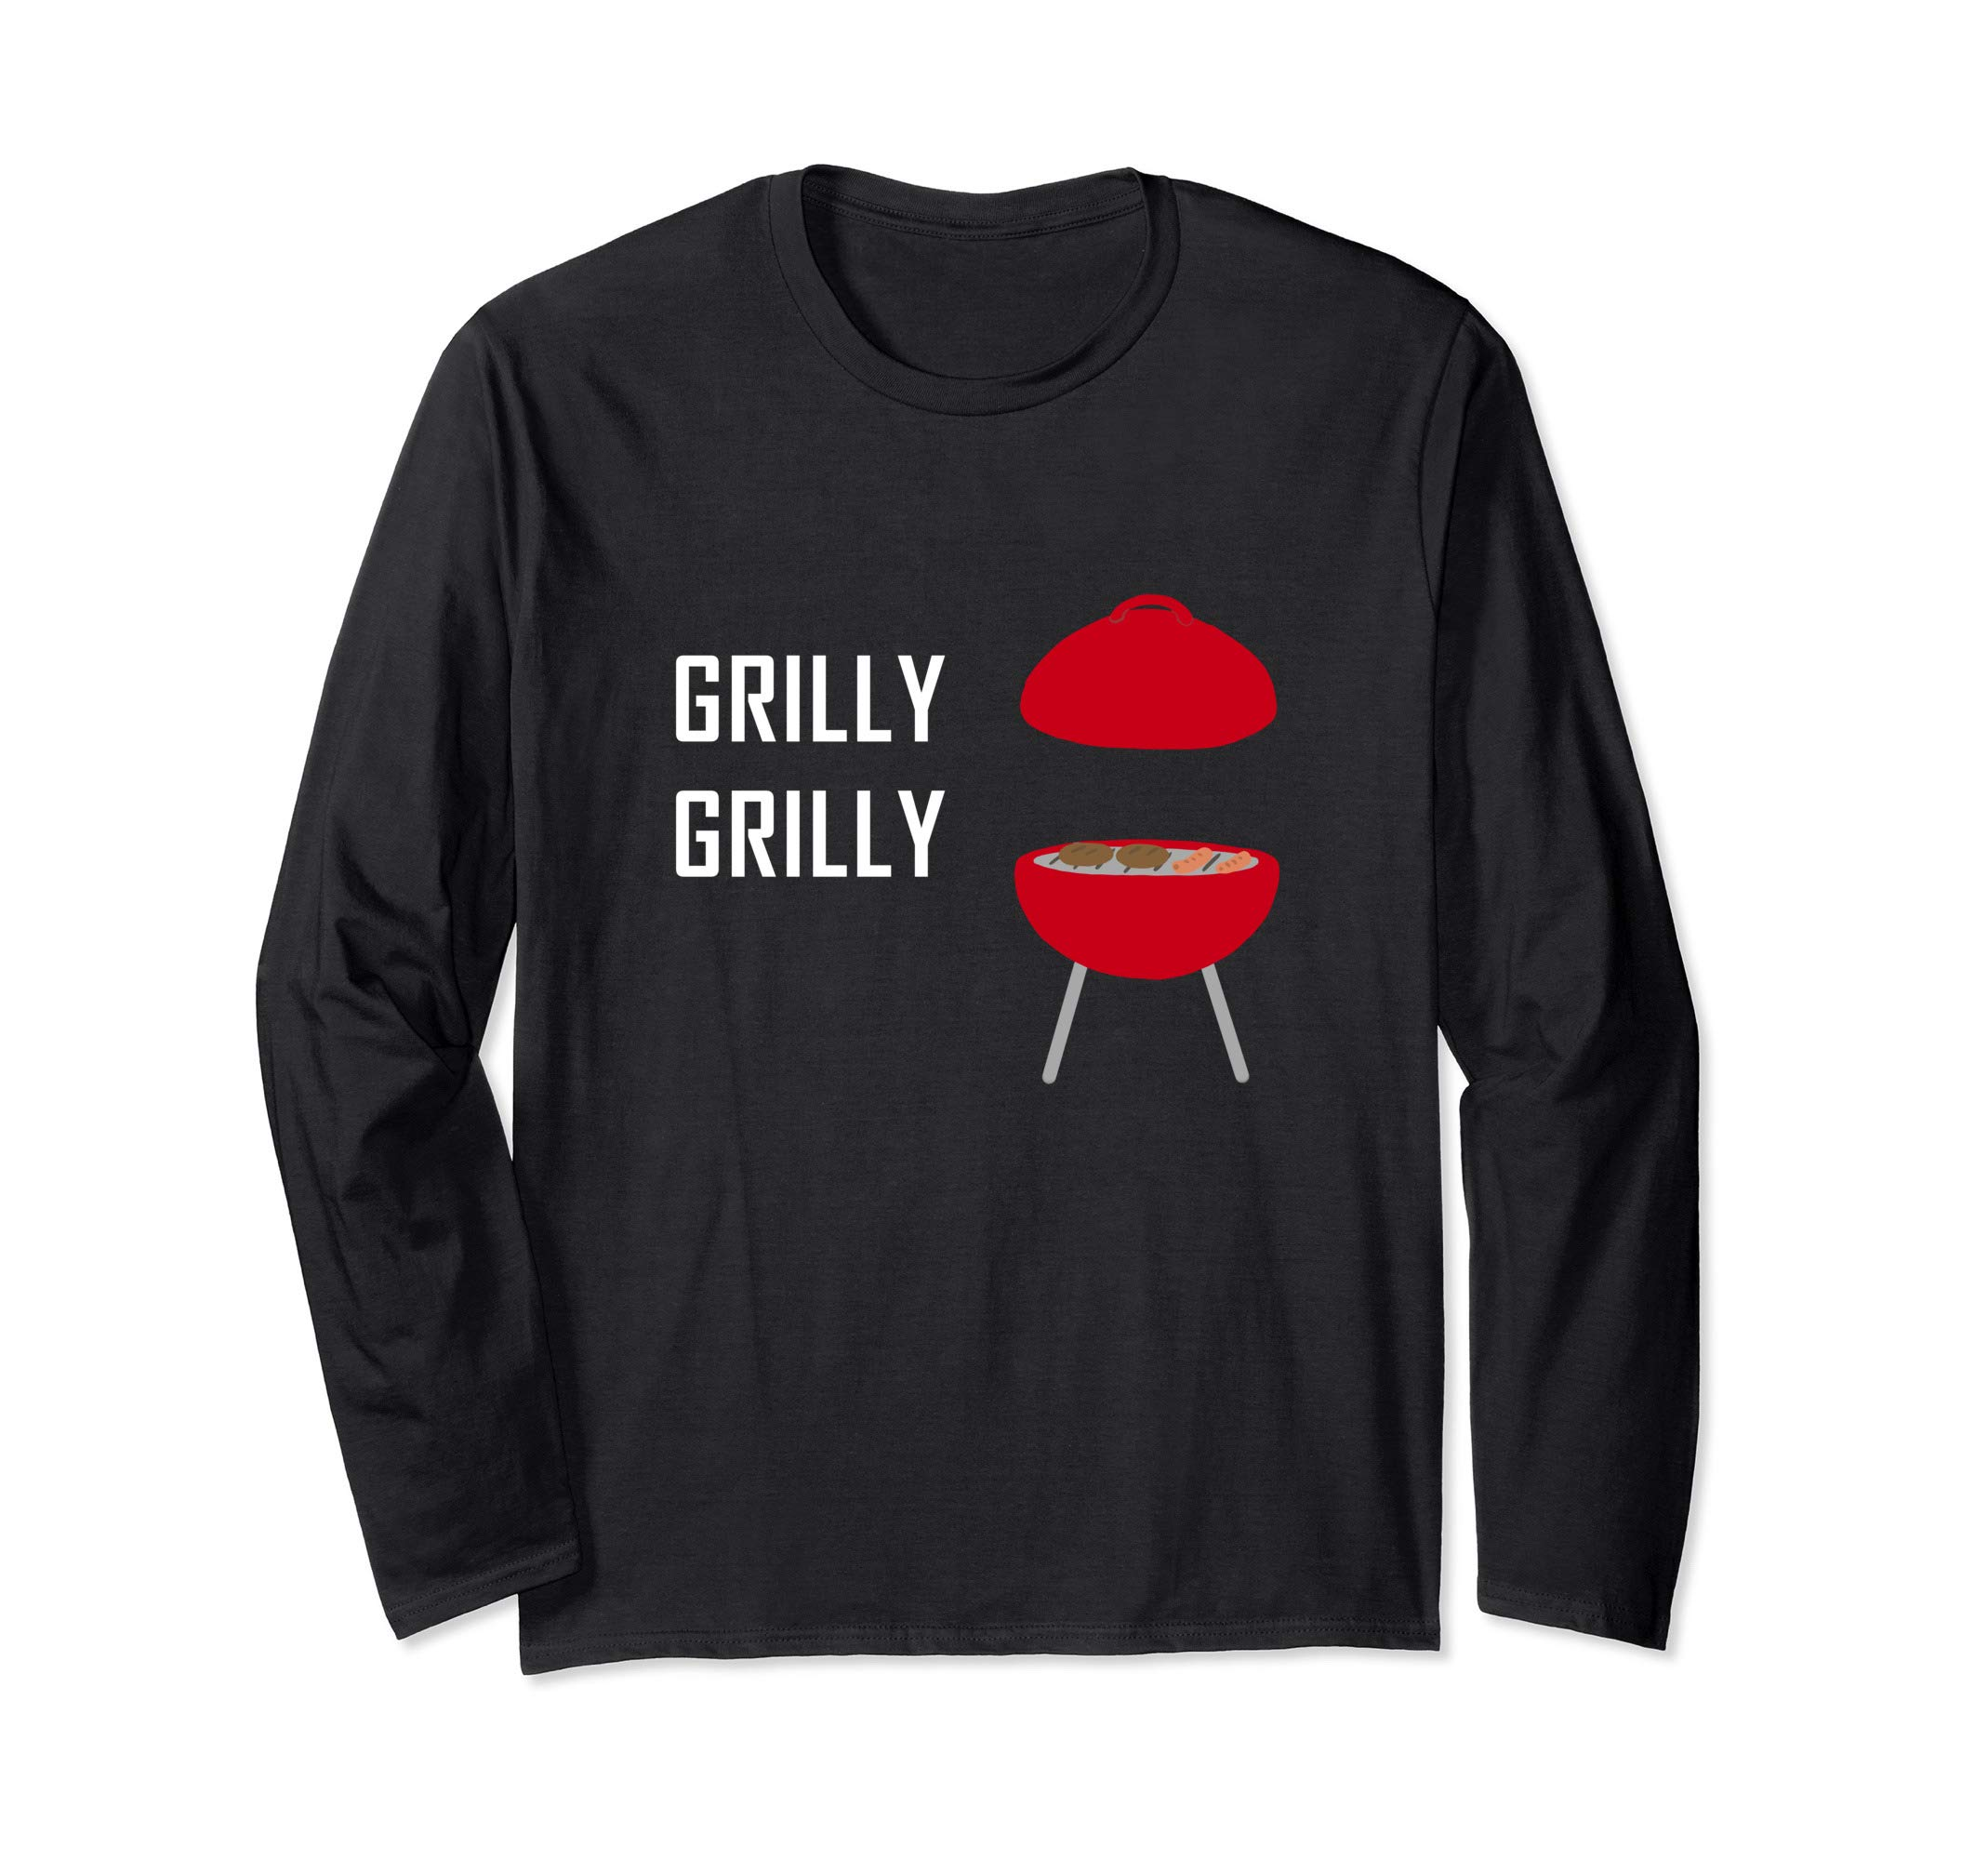 Funny Grilling Grill Shirt Grilly Grilly Dad Gift by Triple G Mavs